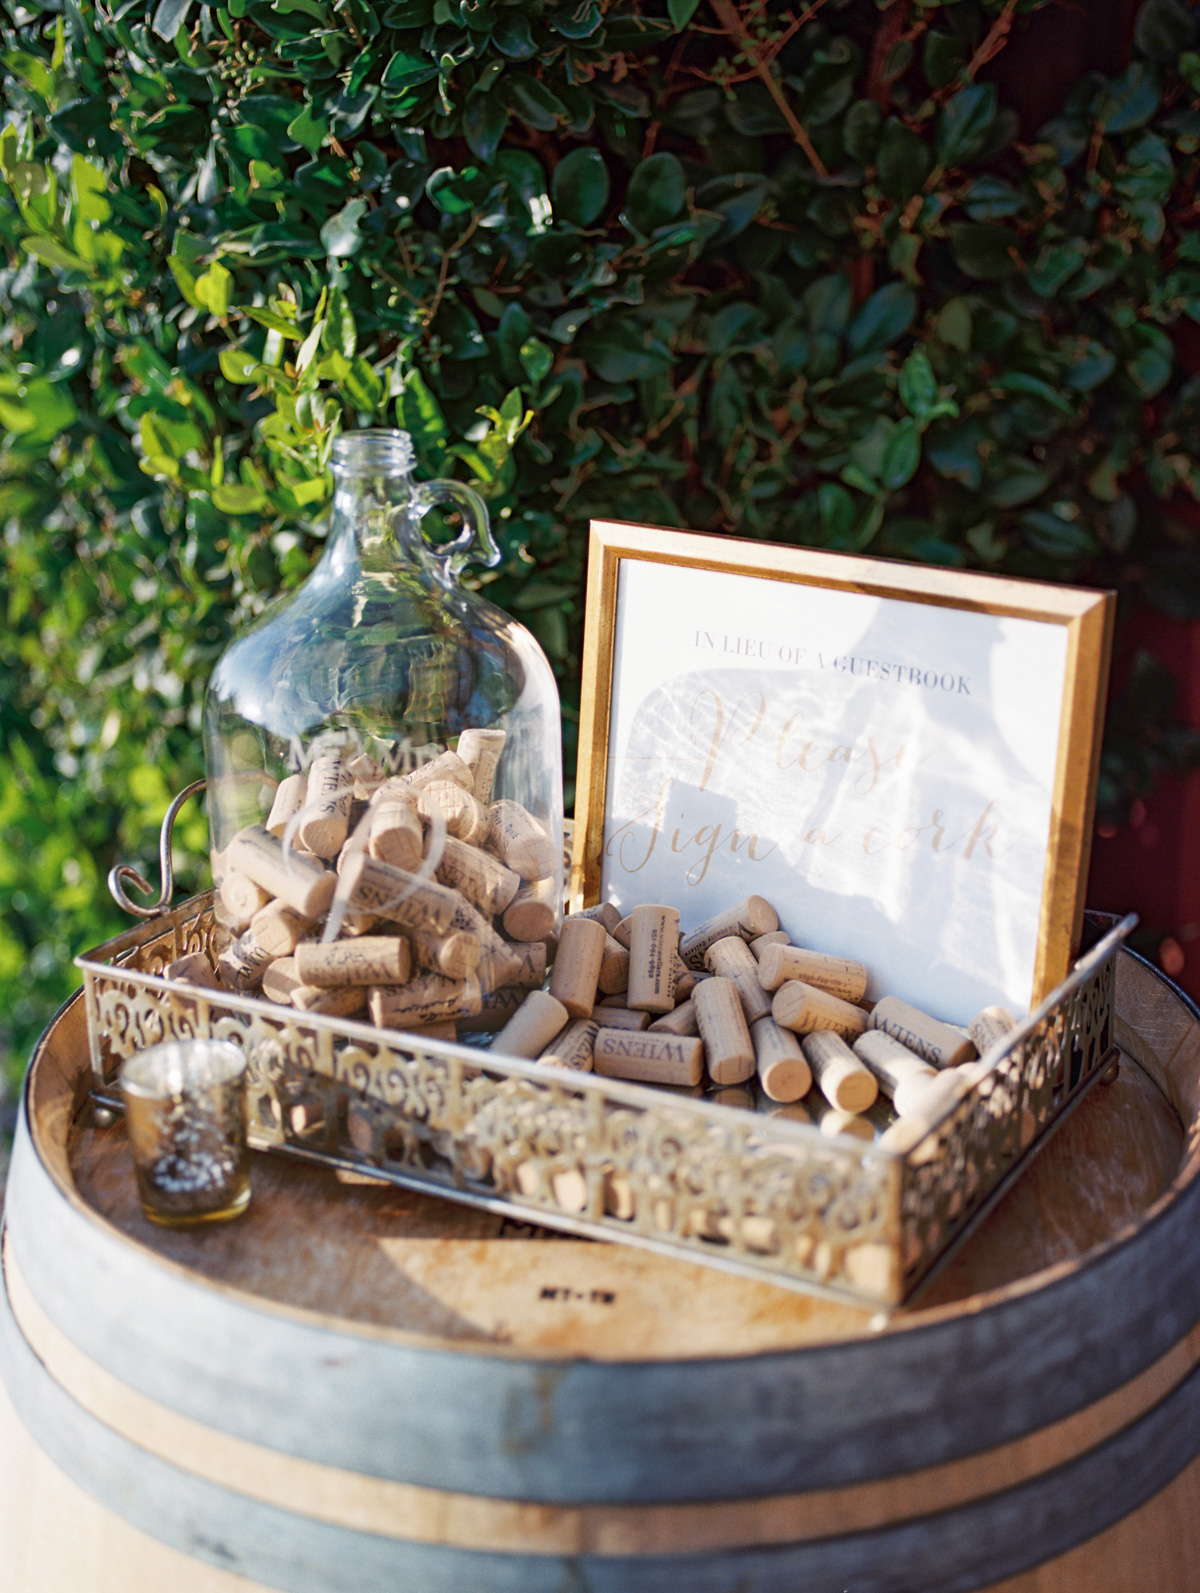 Wine Cork Guest book | Harrison & Jocelyne's gorgeous Temecula wedding day at Wiens Family Cellars captured by Temecula wedding photographers Betsy & John